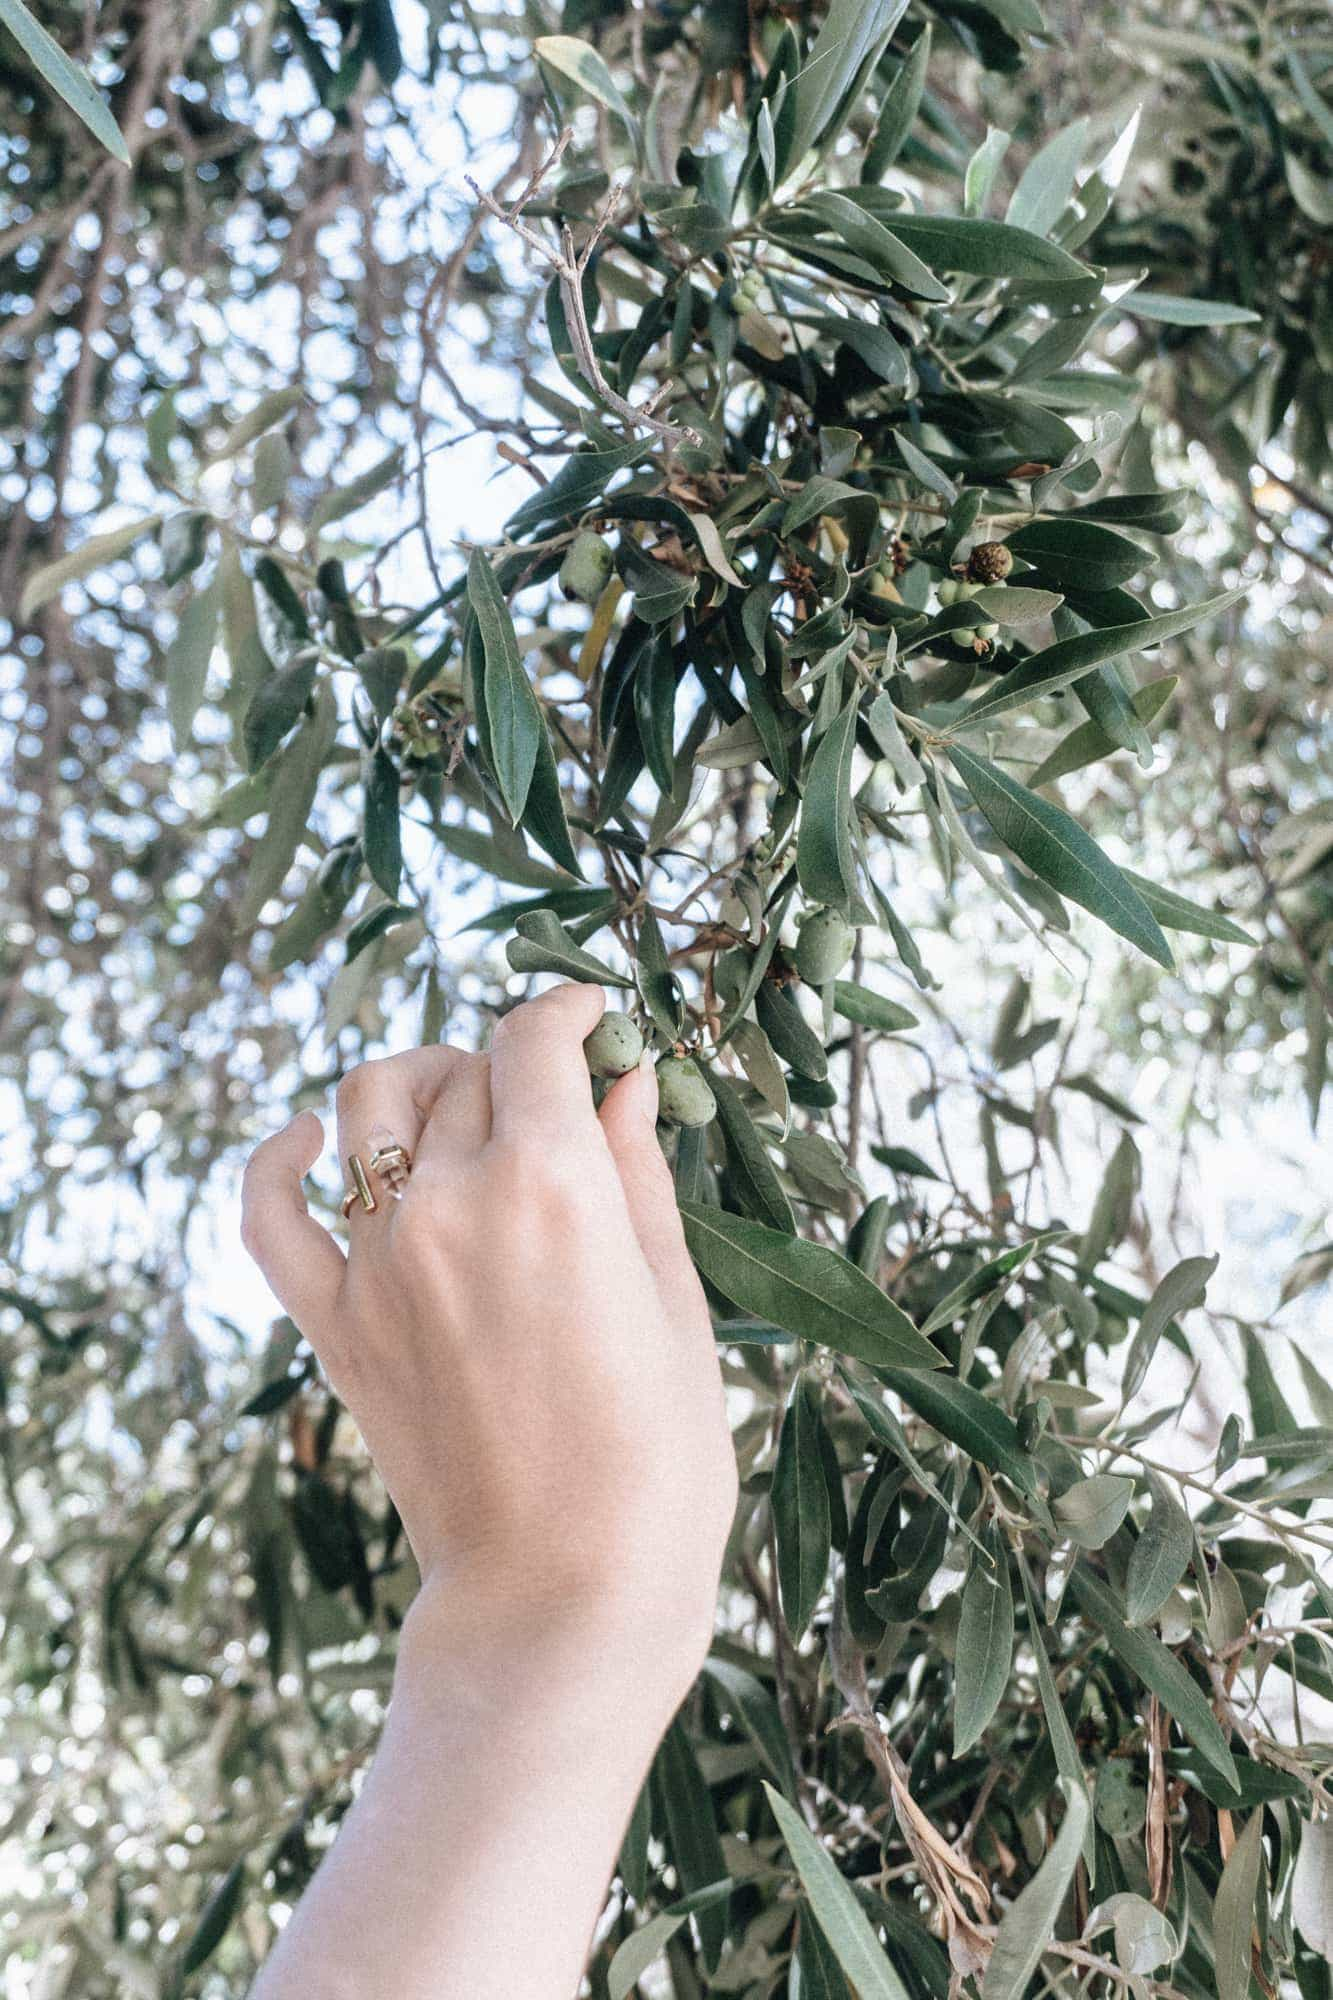 Picking a California olive.